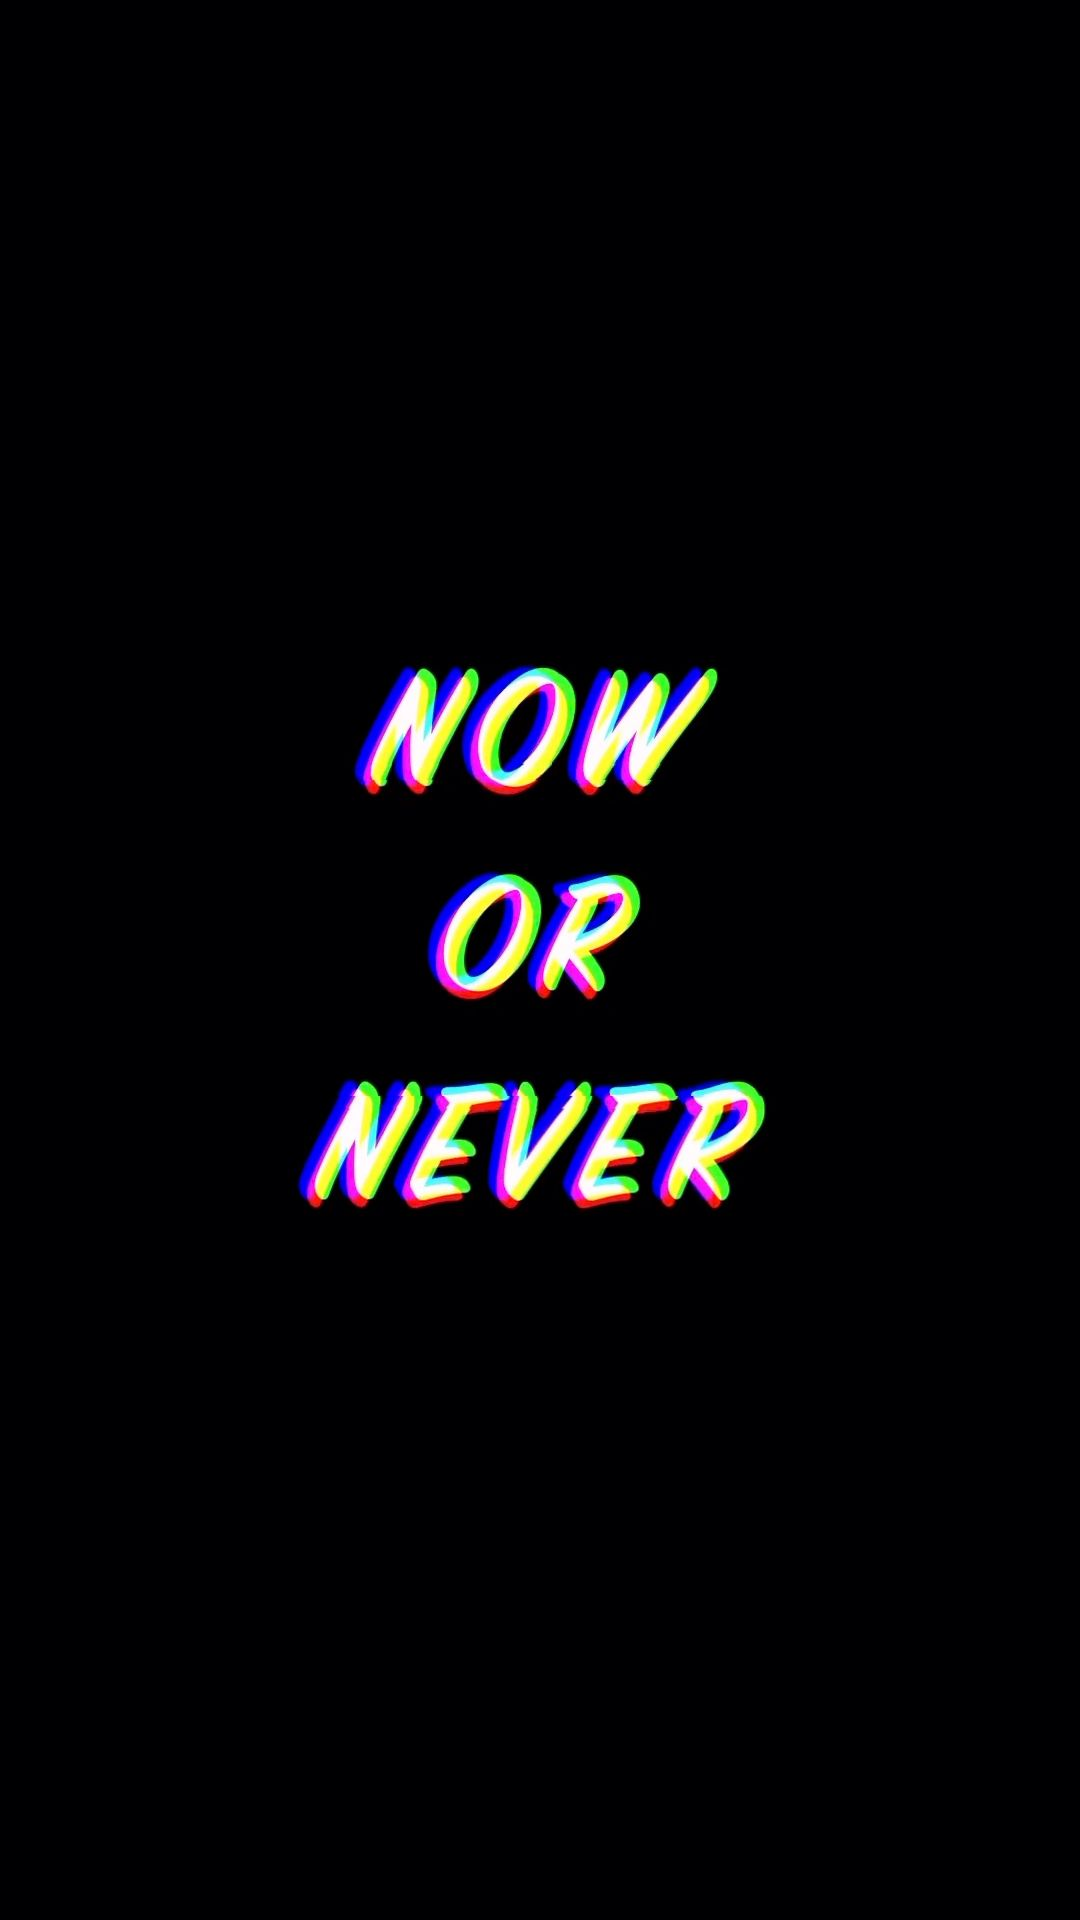 Now or never!